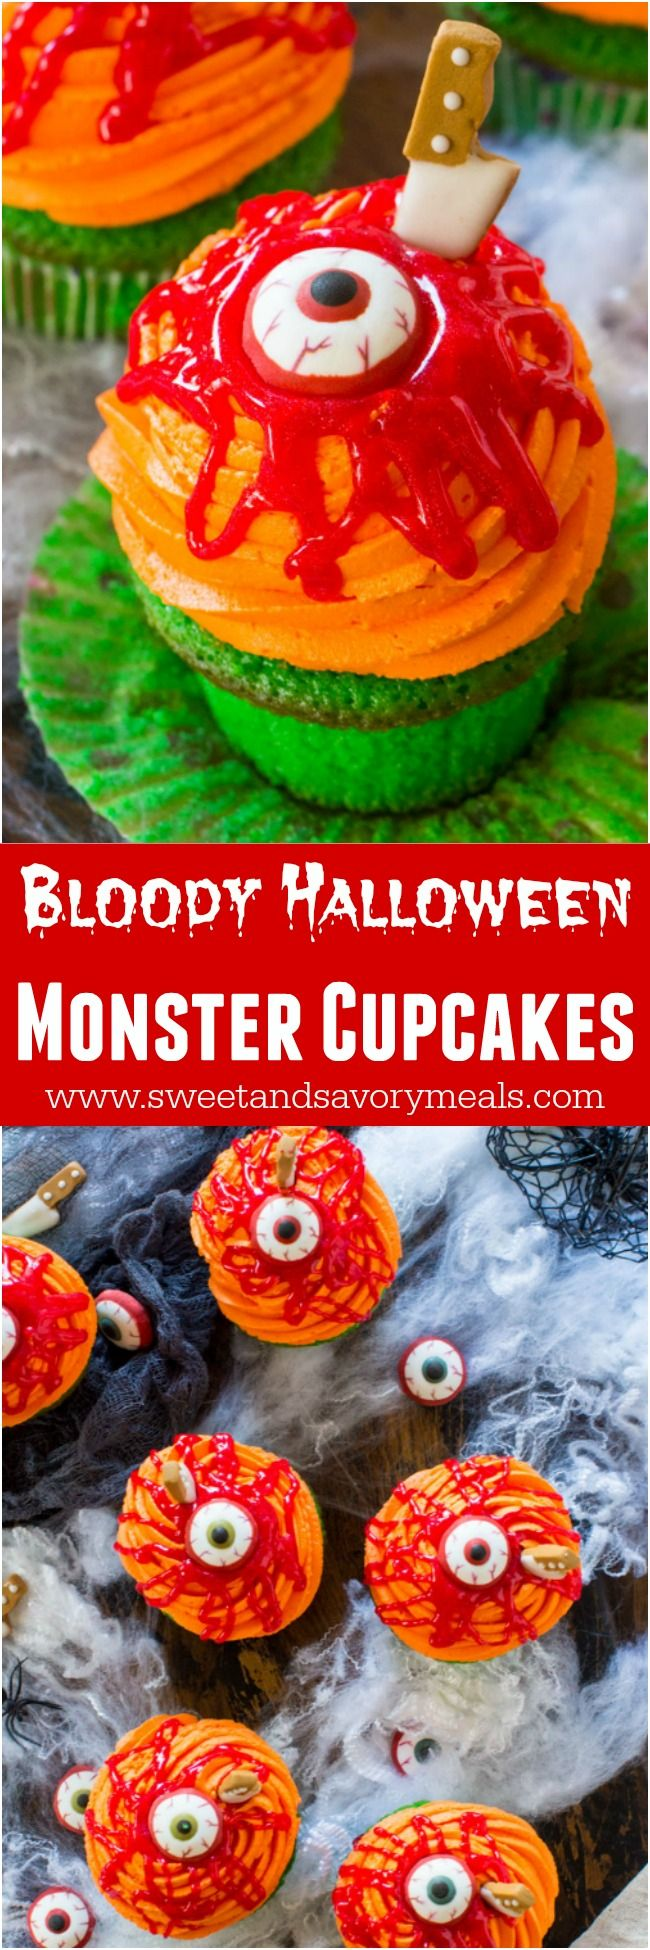 Bloody Halloween Desserts like these Toxic Cupcakes, are a fun and easy way to take your Halloween treats to a new scary, delicious and fun level! #halloween #bloody #cupcakes